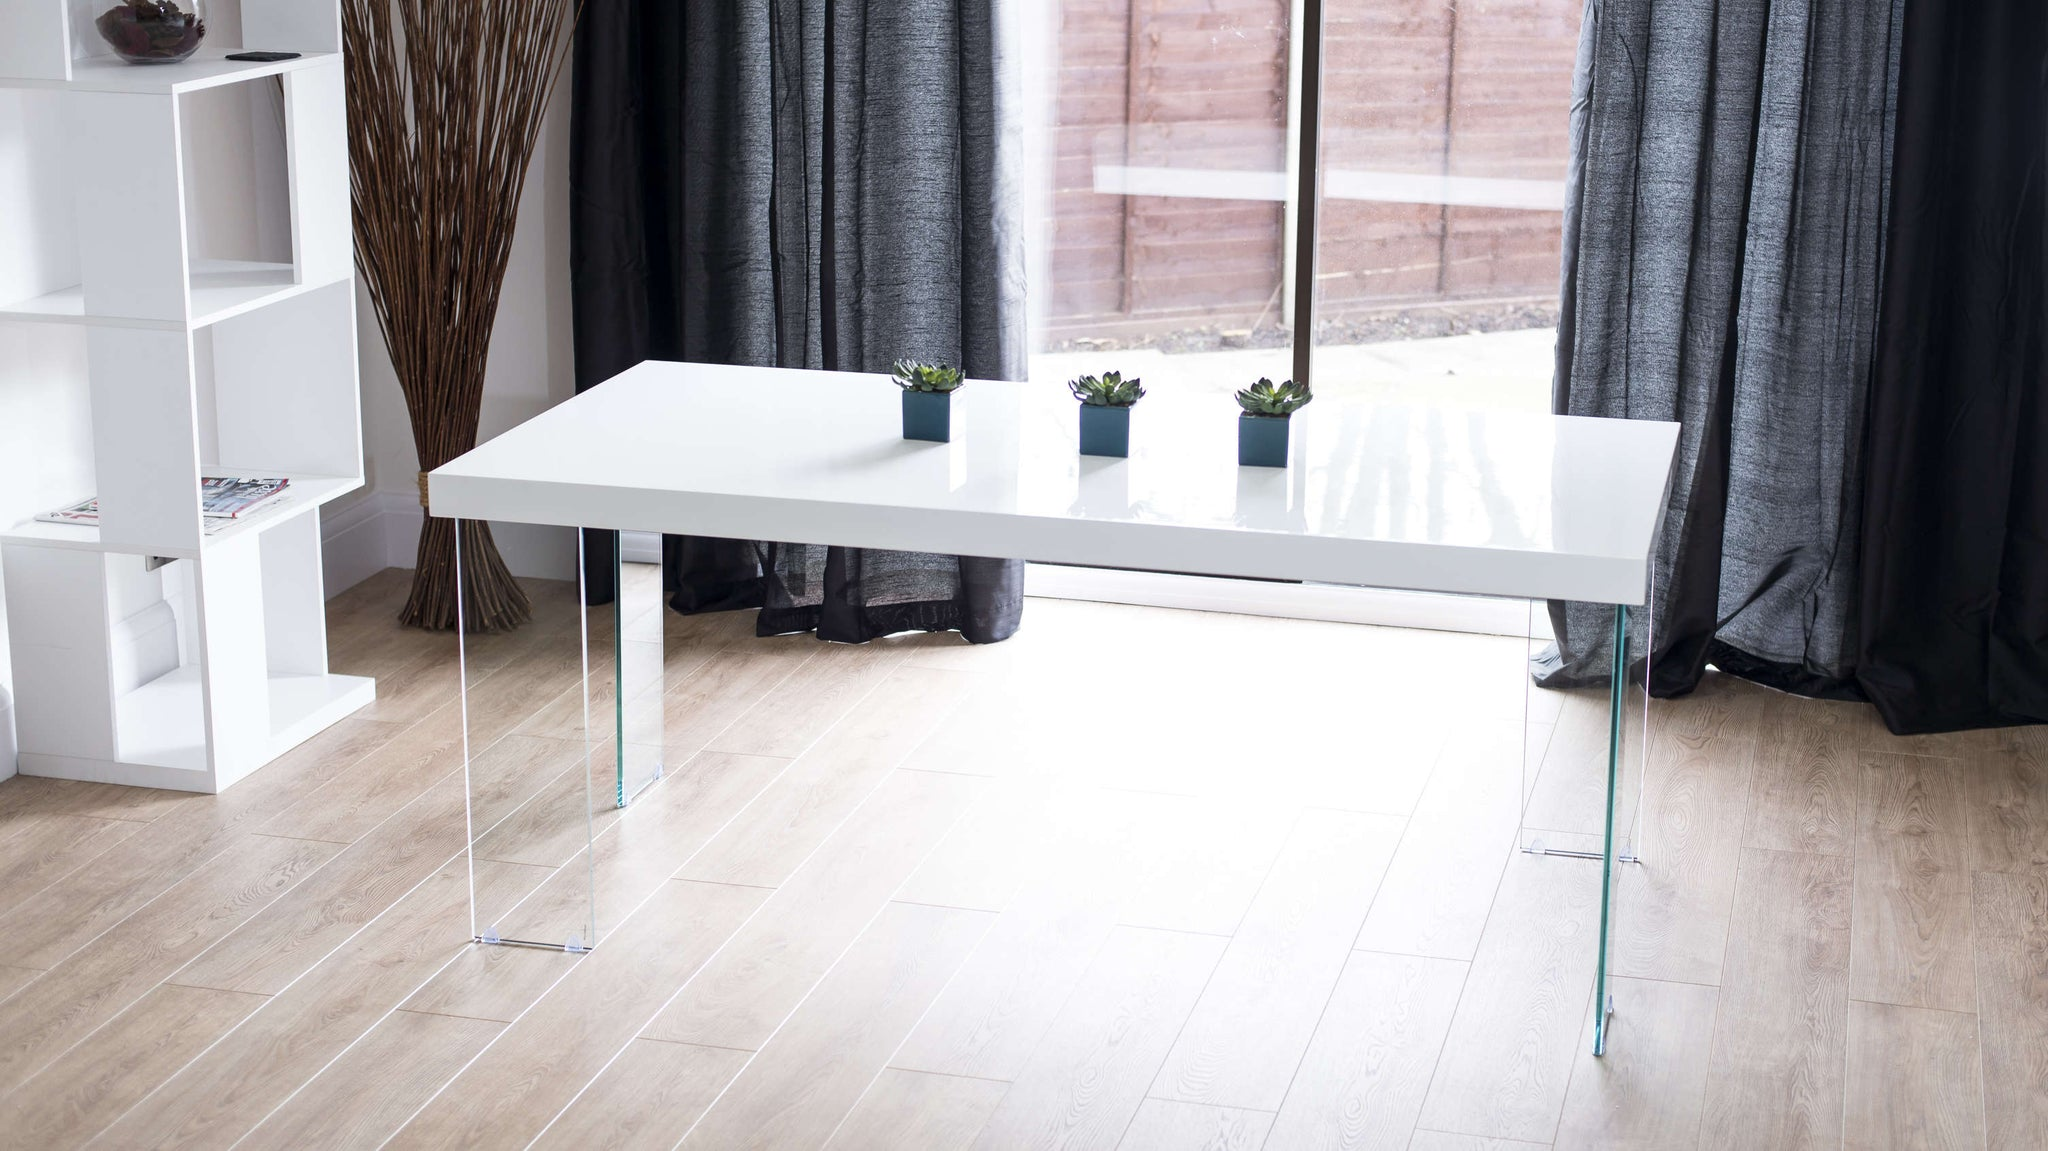 White Gloss Dining Table with Glass Legs